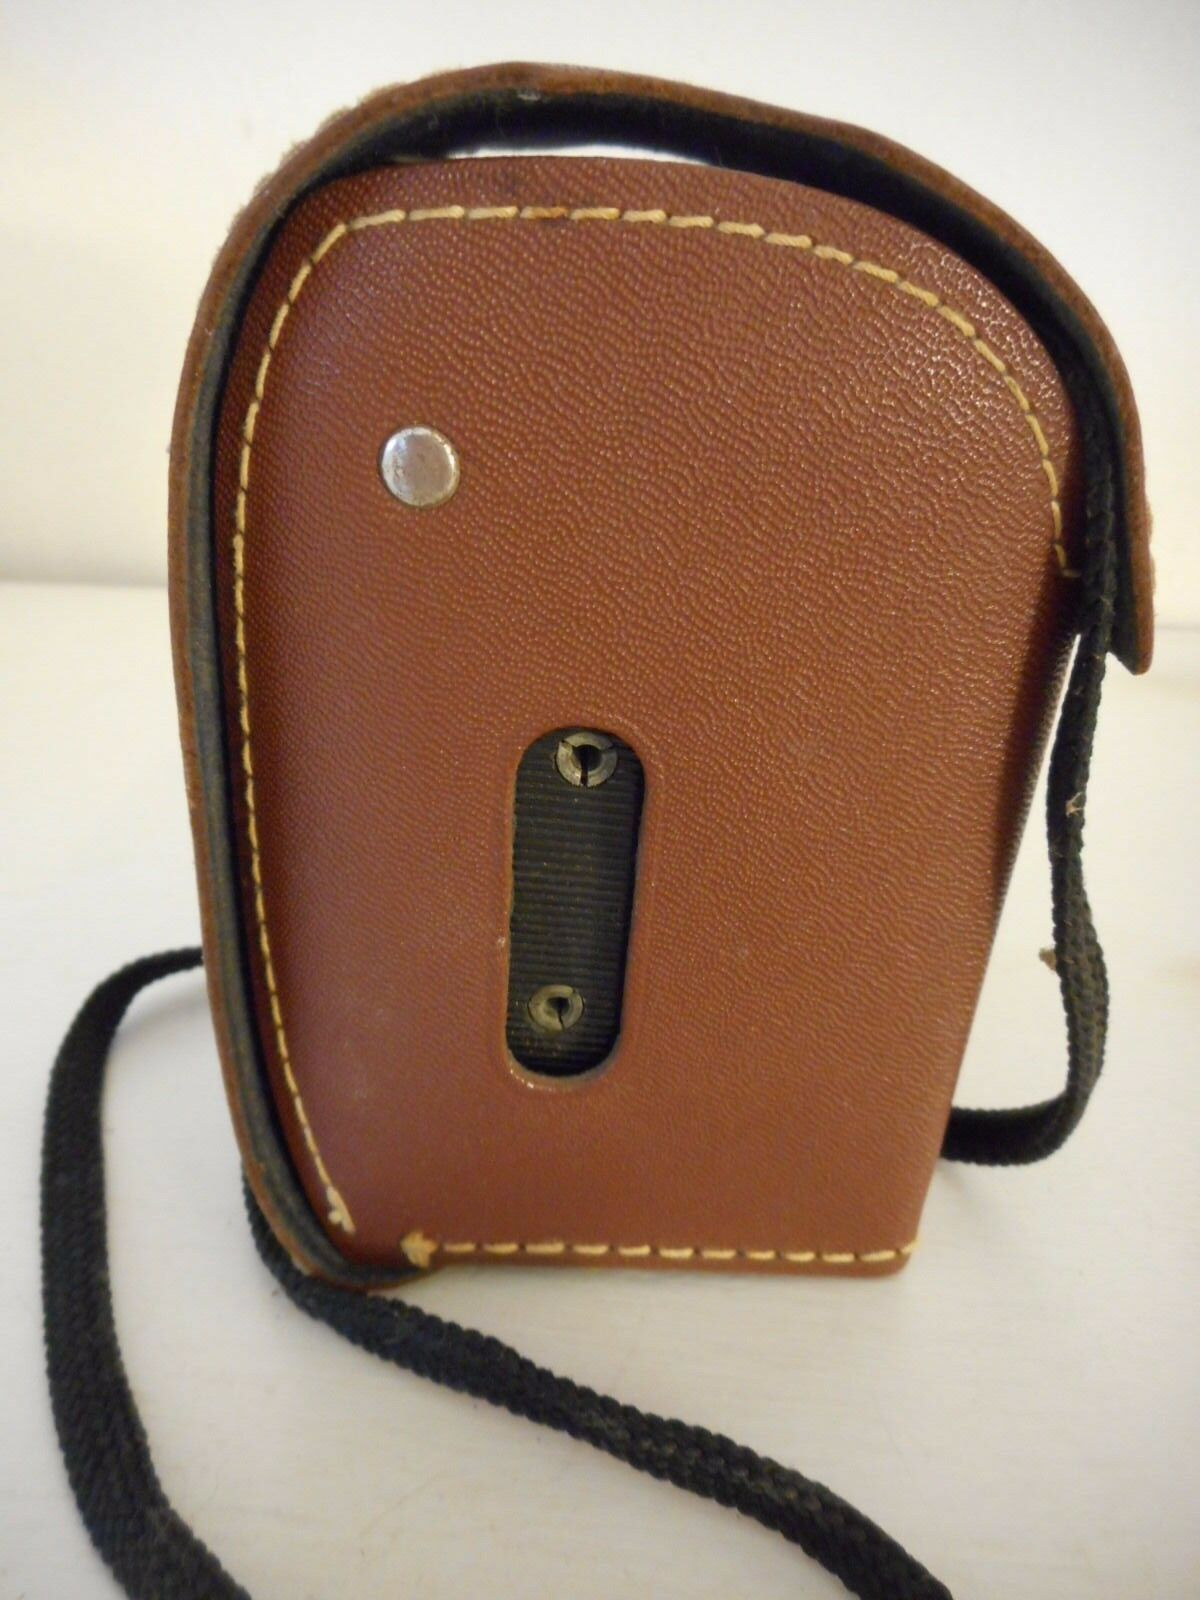 Vintage Antique Argus Lumar Seventy Five Camera with Leather Case